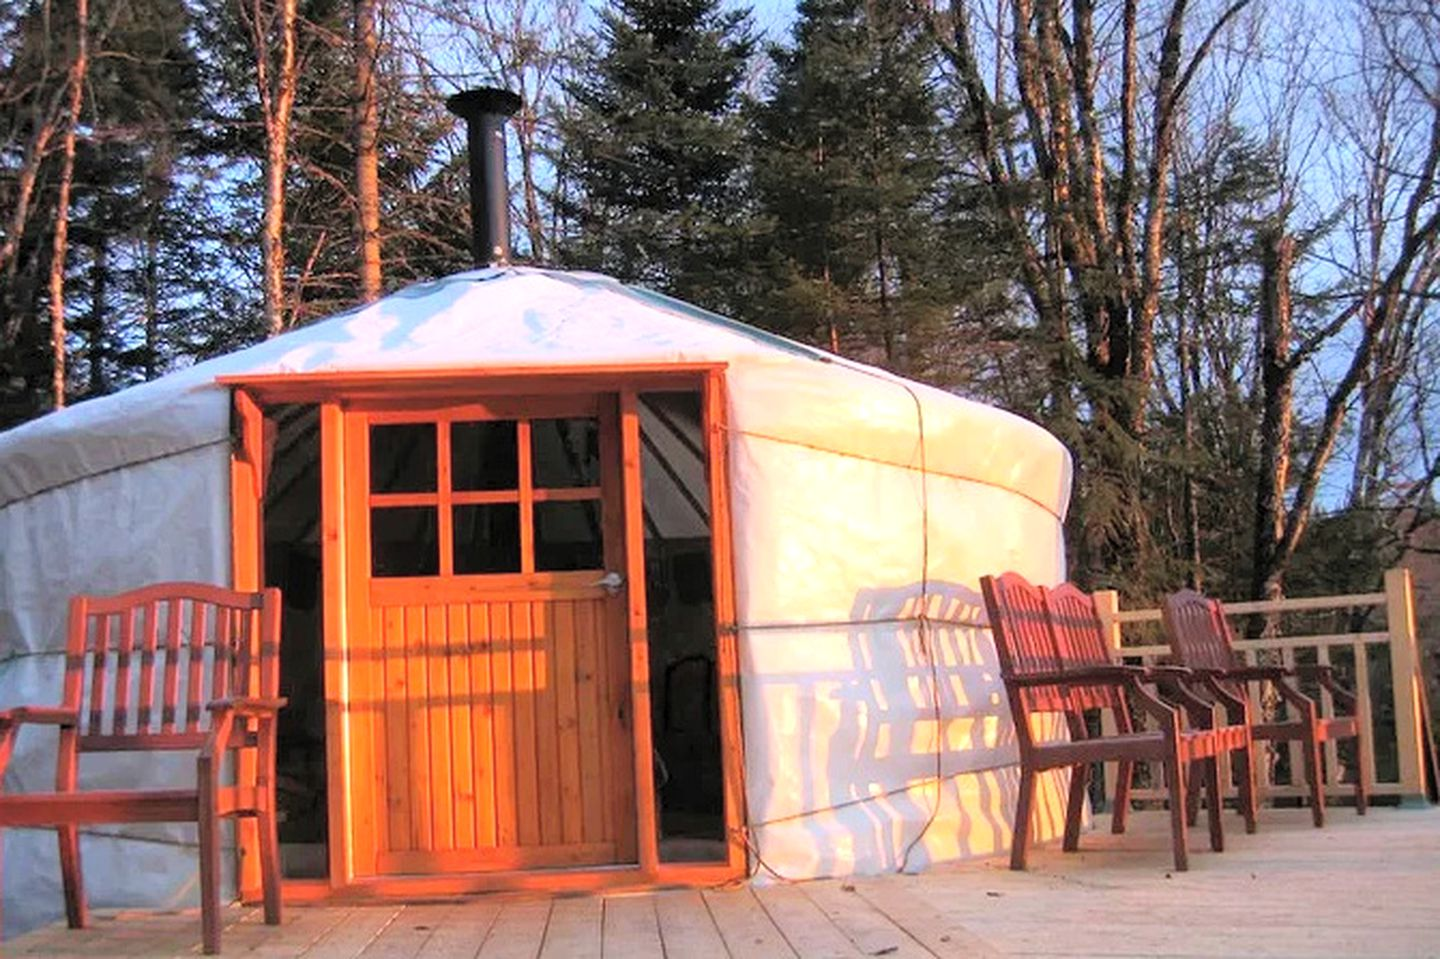 The Quebec yurt rental to go glamping in Canada. Mountain getaways are easy at this accommodation near Quebec City